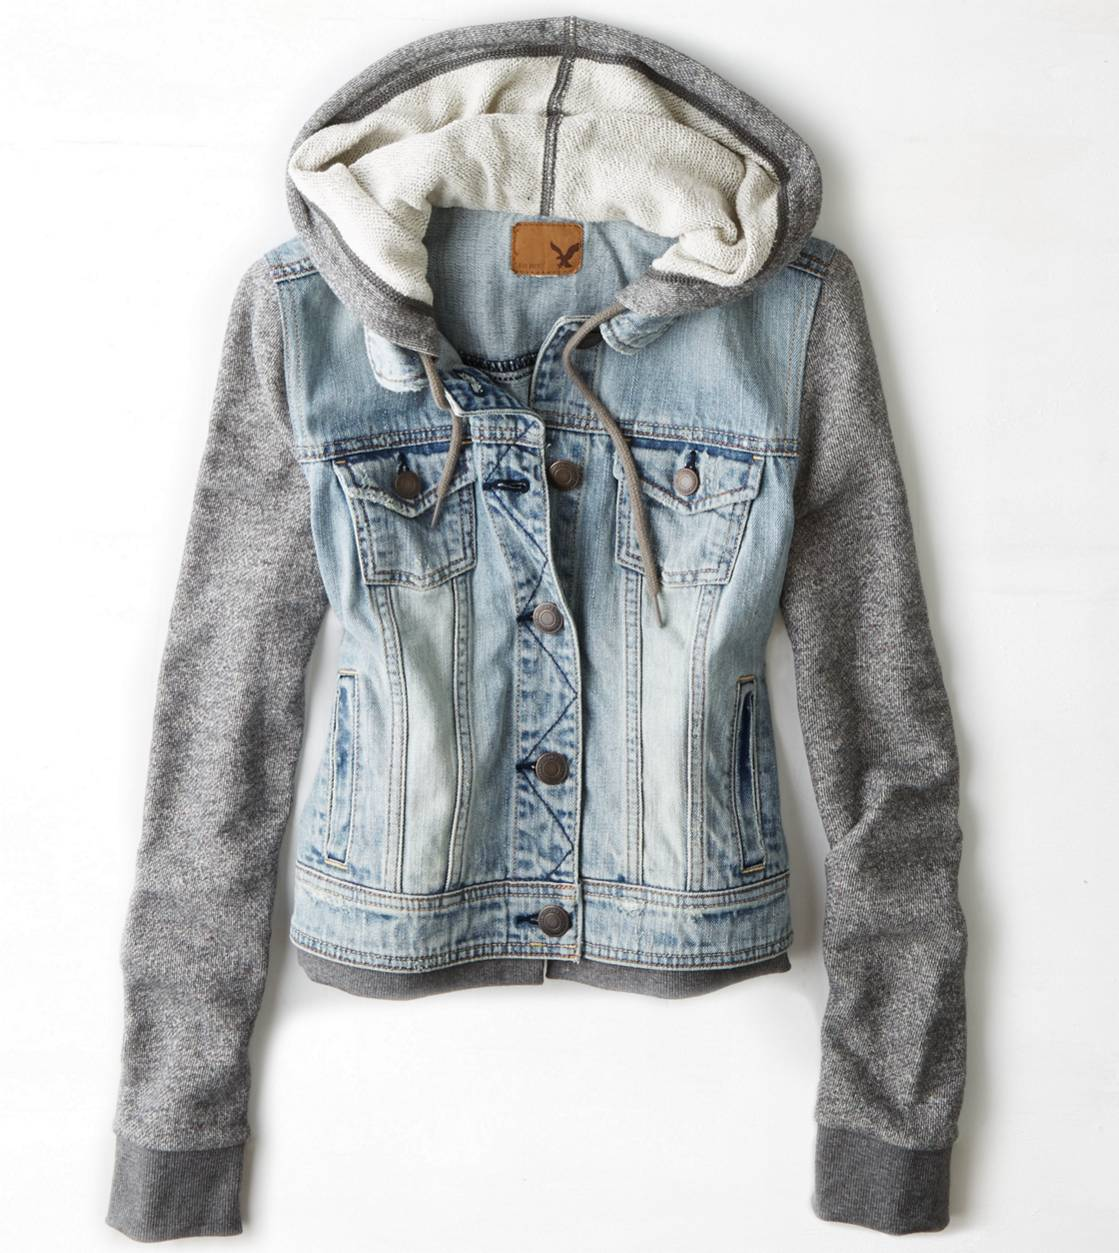 American Eagle Outfitters hooded denim jacket Sweatshirt hooded denim/Jean jacket, size XS. Small rip on one of the sleeves as pictured but still has a lot of life to it.